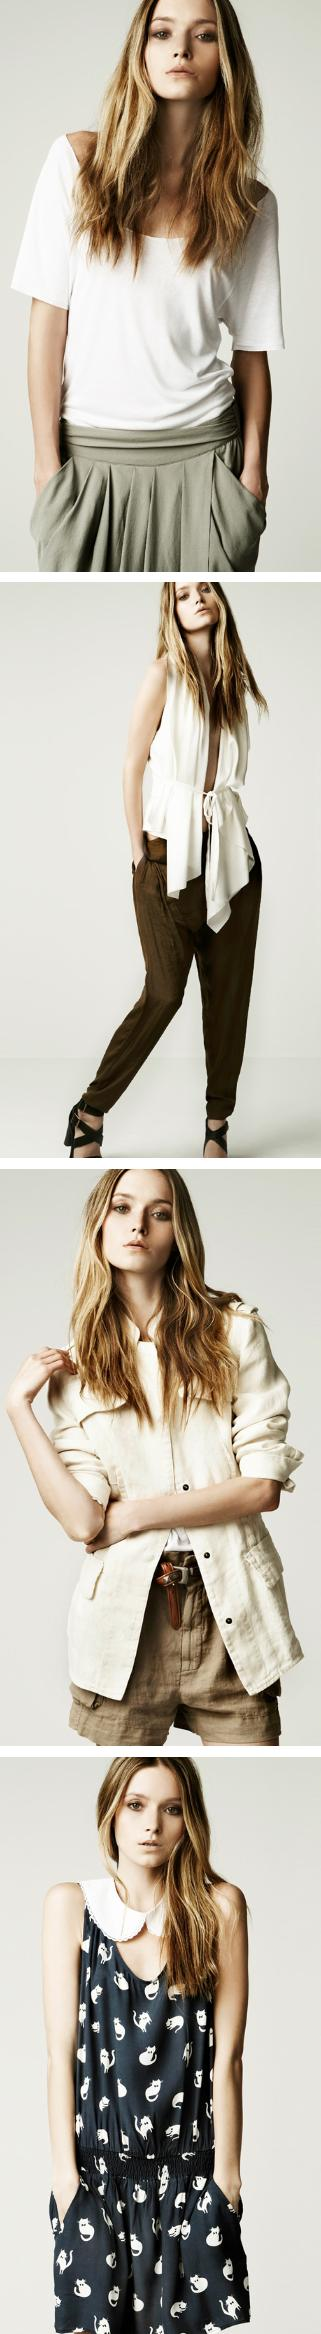 Zara Lookbook